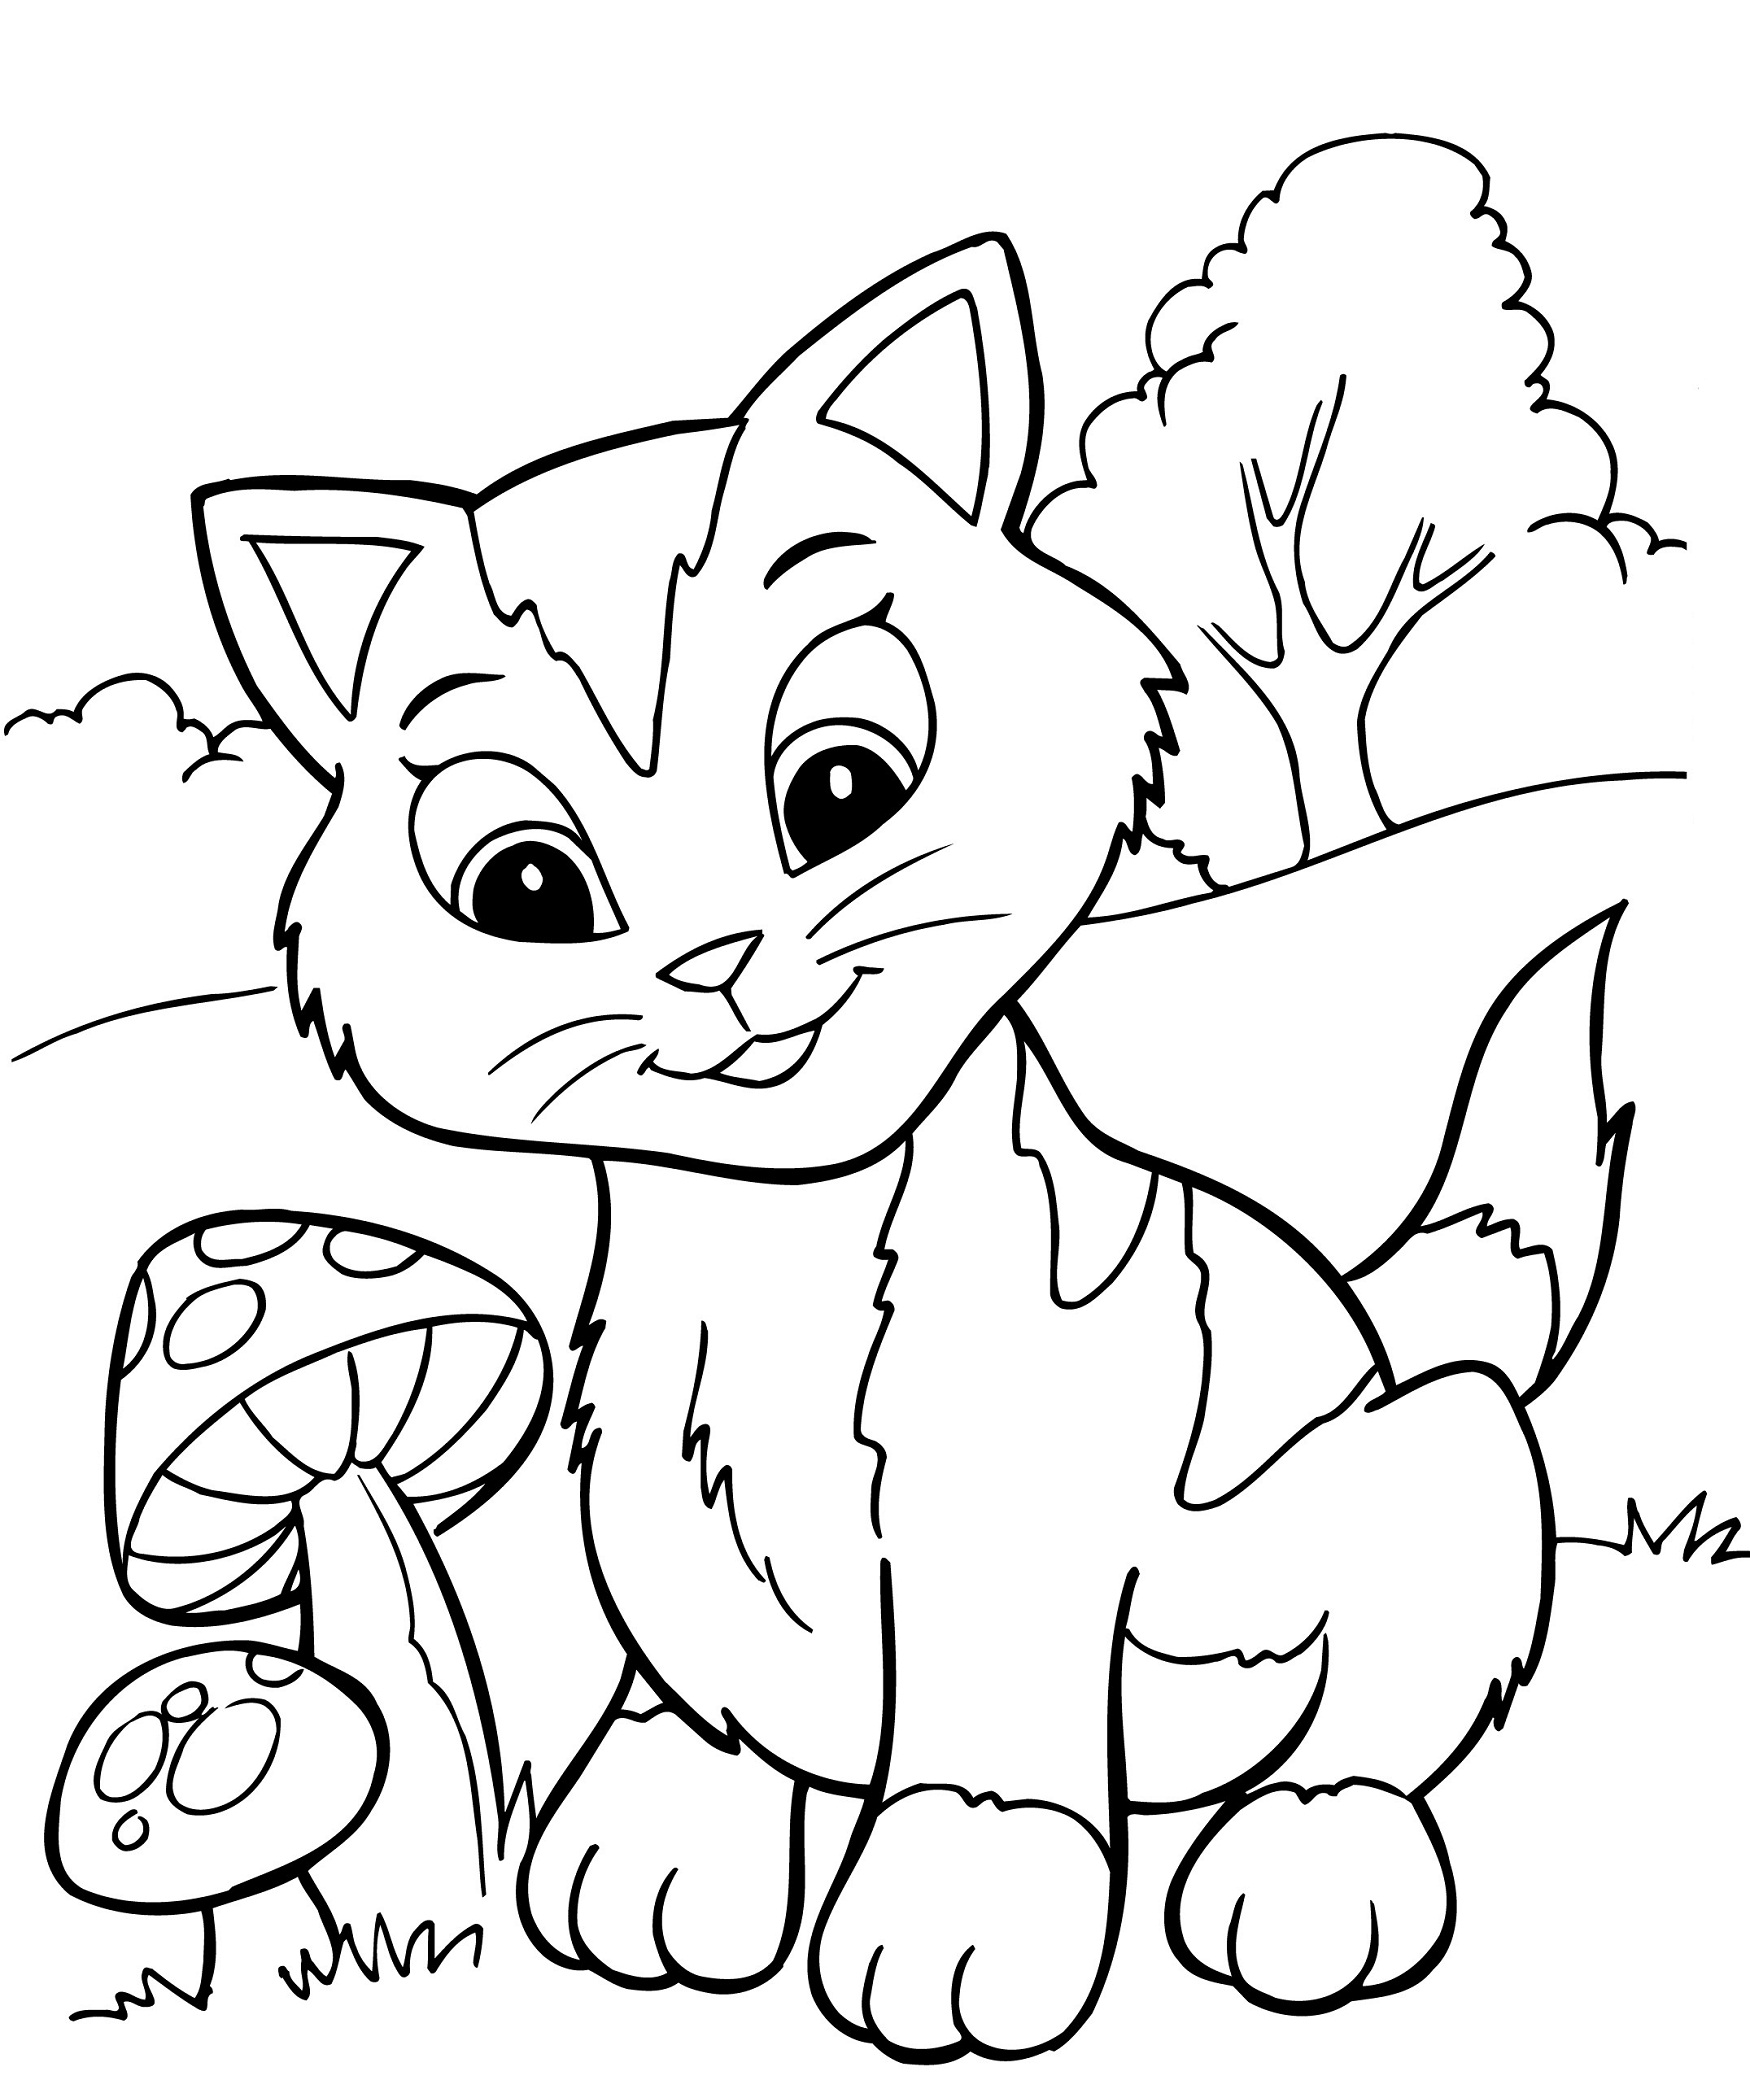 1750x2080 Free Printable Kitten Coloring Pages For Kids